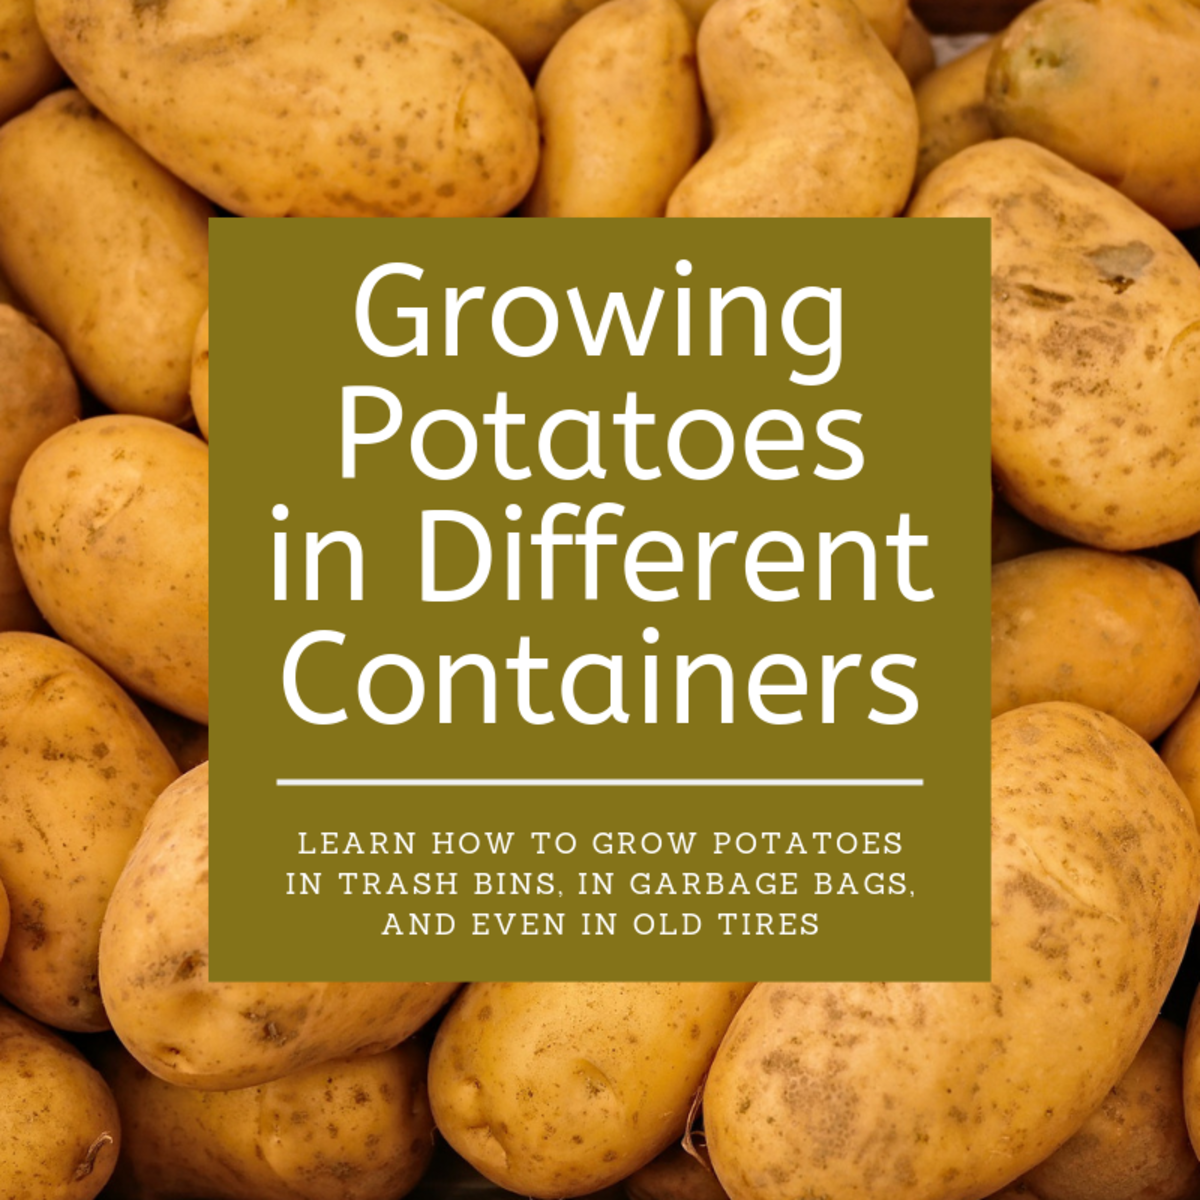 This article will show you how to grow your own potatoes in various containers, including garbage bags, trash bins, and even in old, discarded tires.